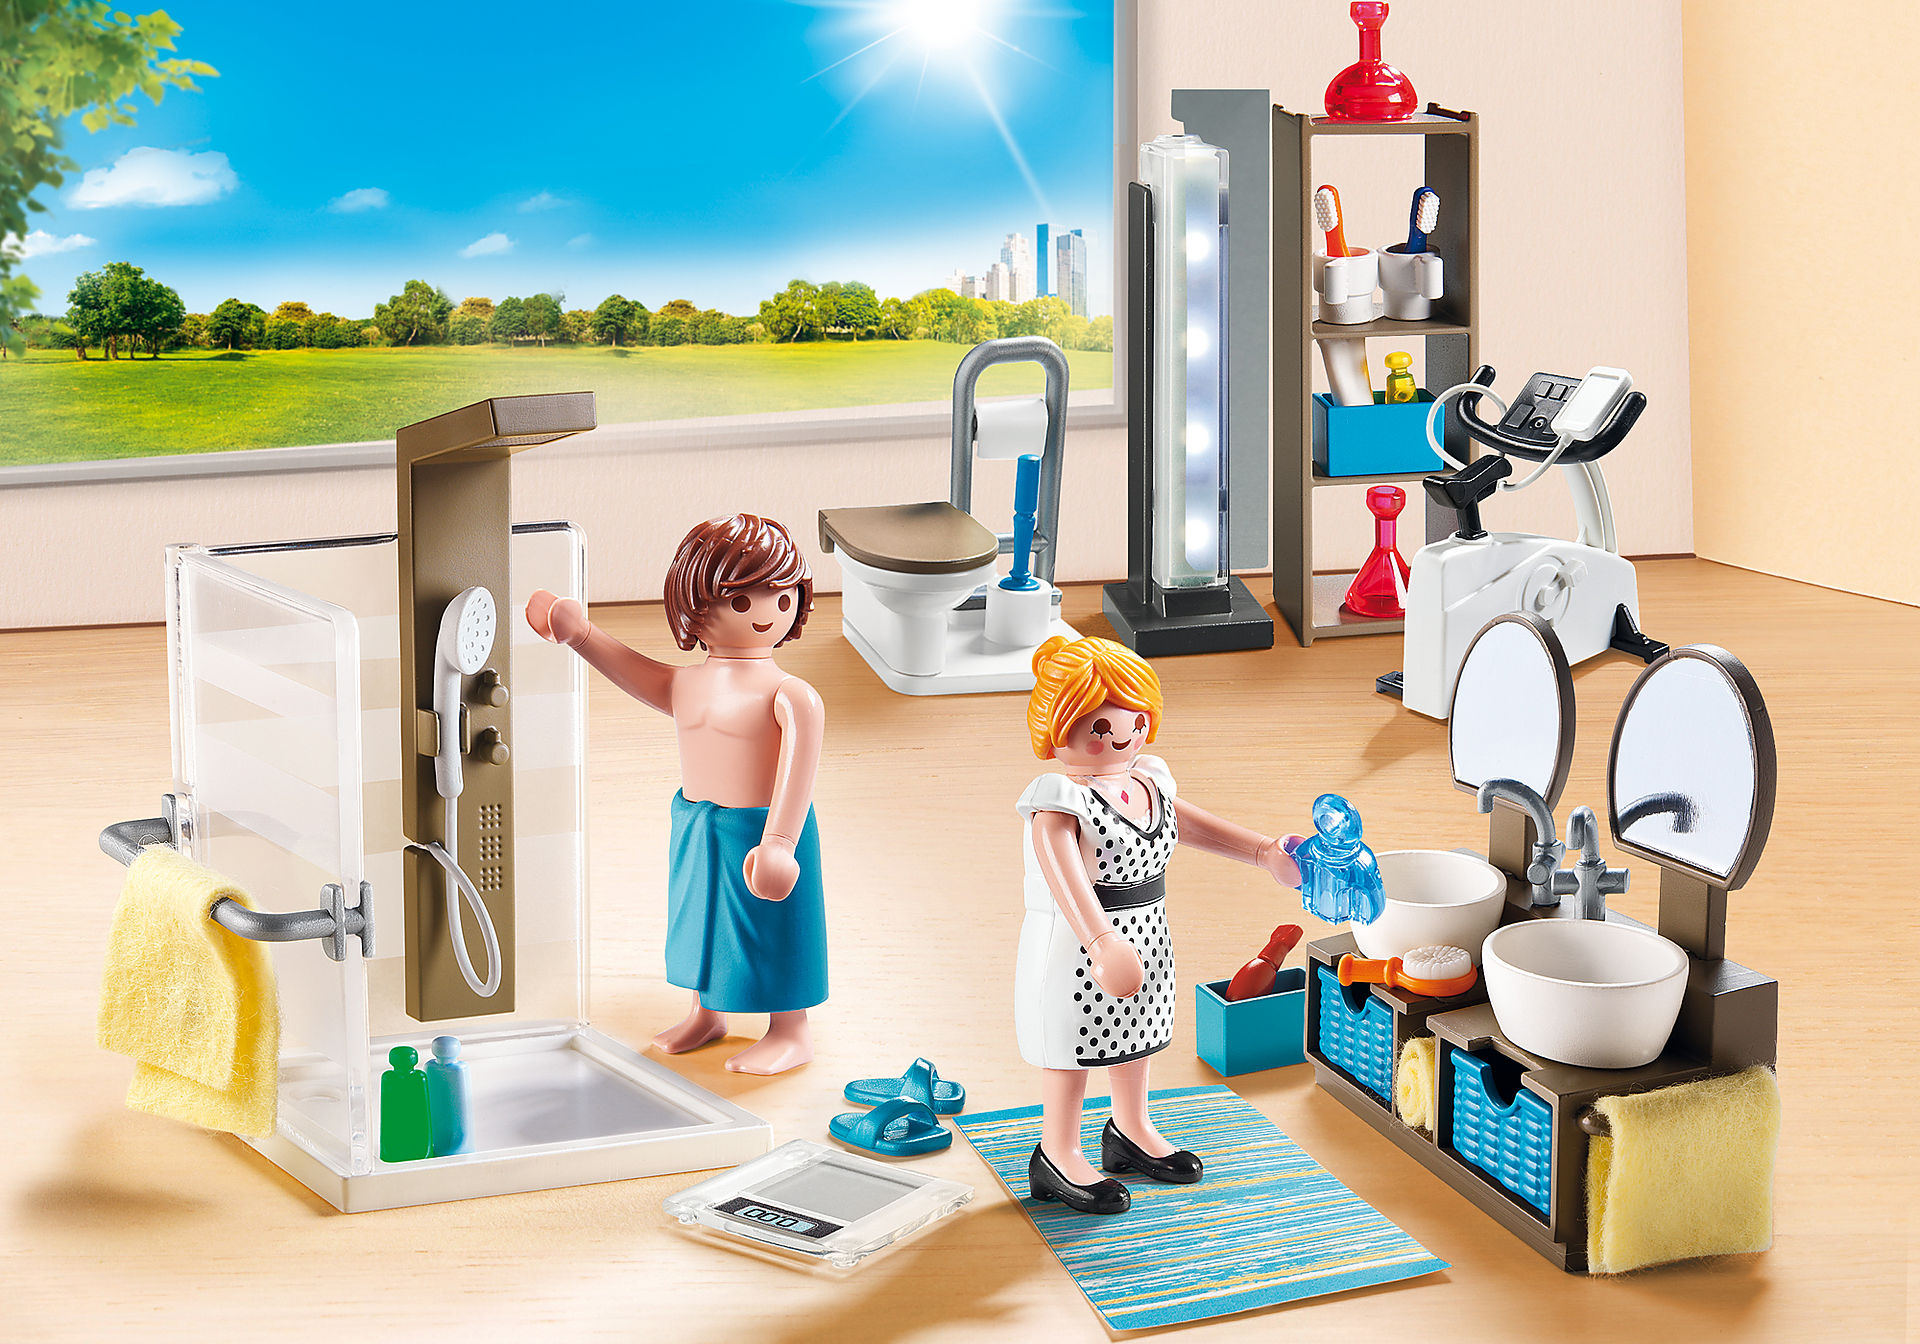 http://media.playmobil.com/i/playmobil/9268_product_detail/Bathroom